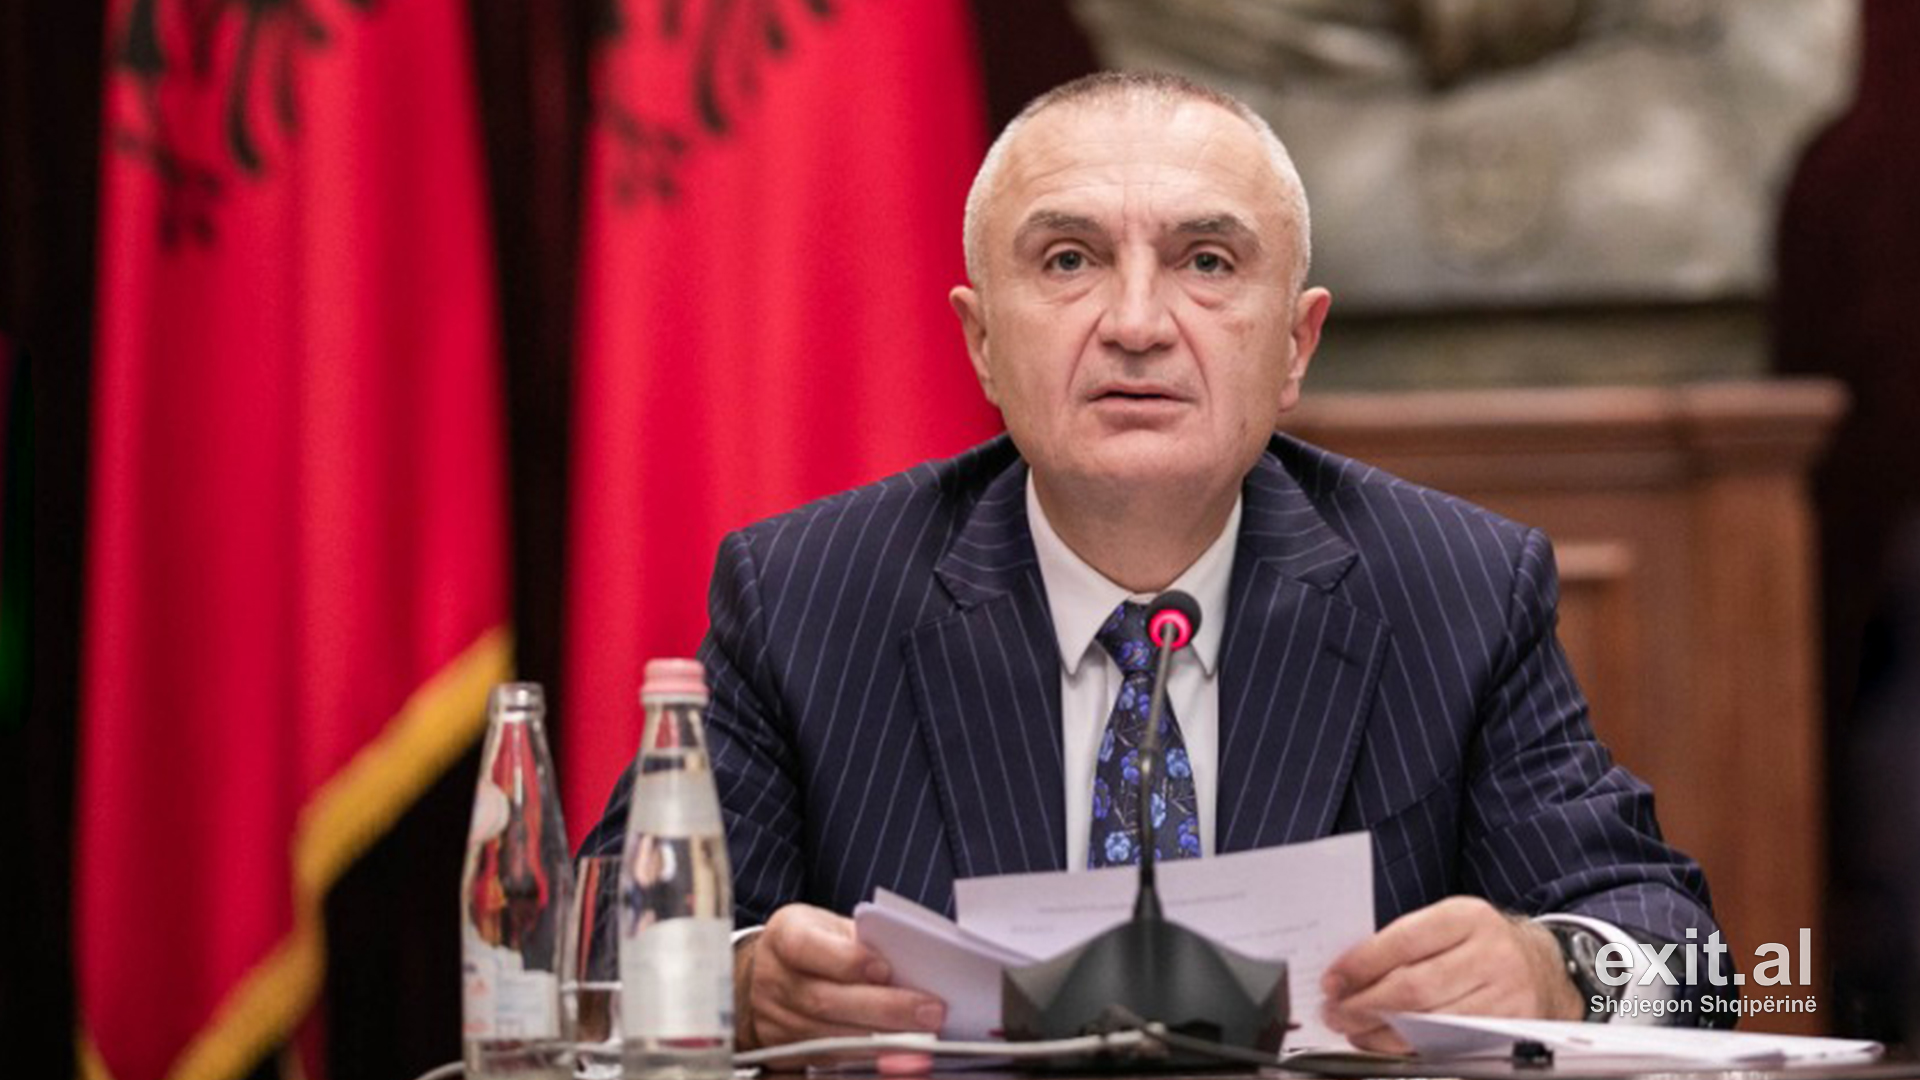 President Urges Government to Improve Construction Code and Support Research Following Albanian Earthquake